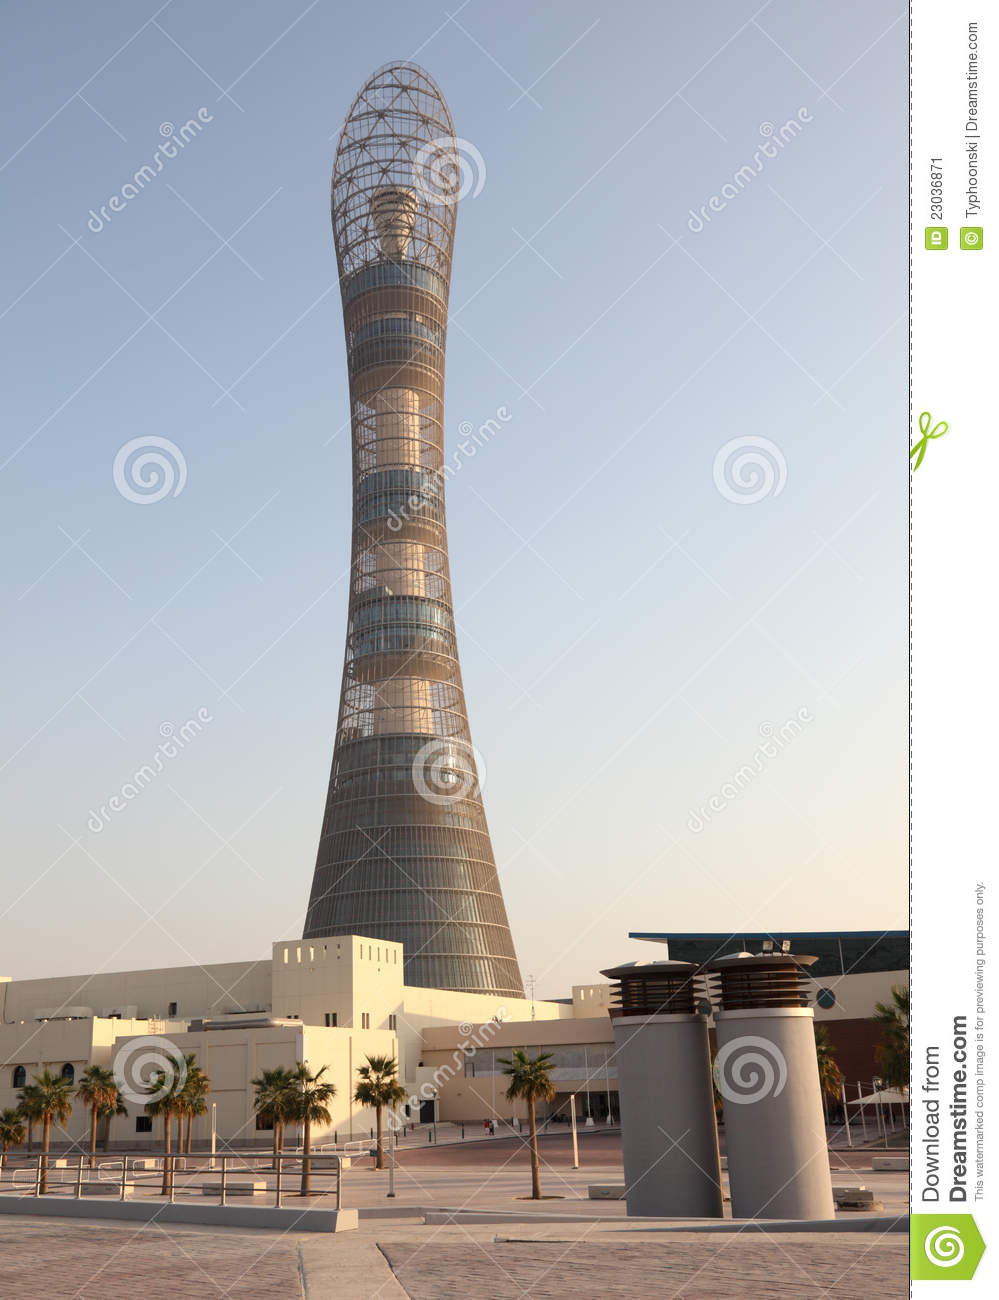 The Aspire Tower in Doha